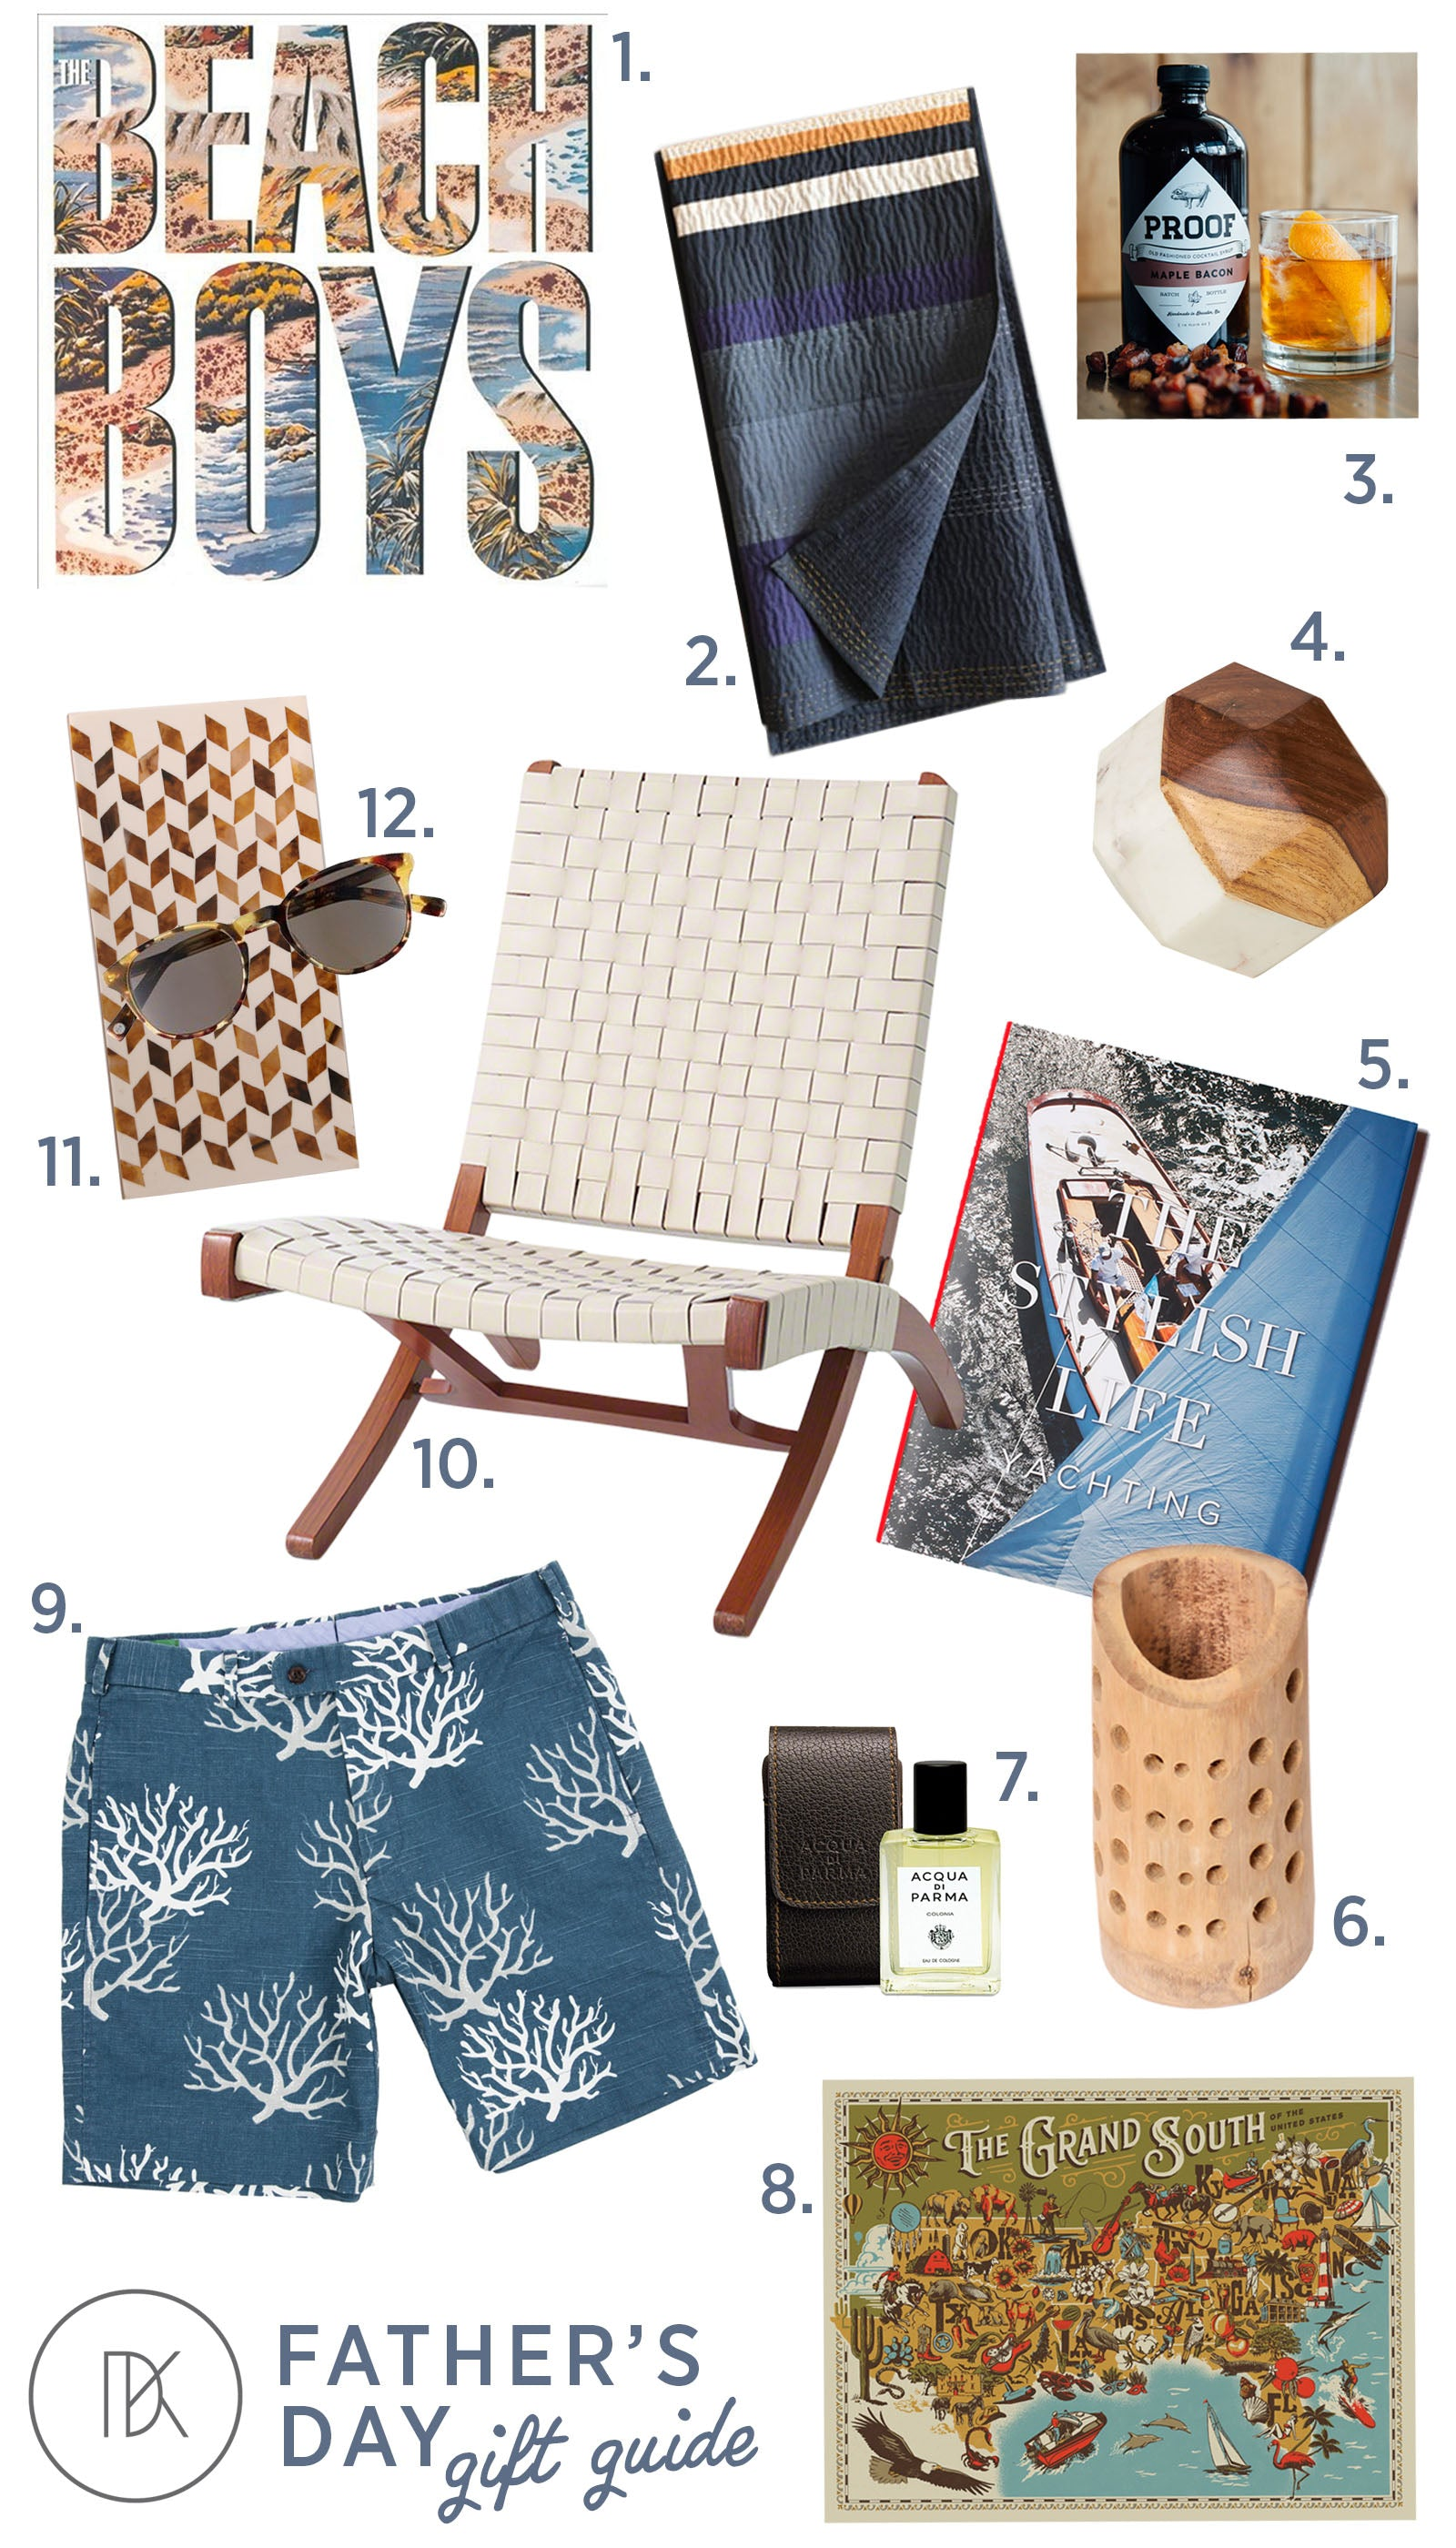 Father's Day Gift Guide from Dear Keaton